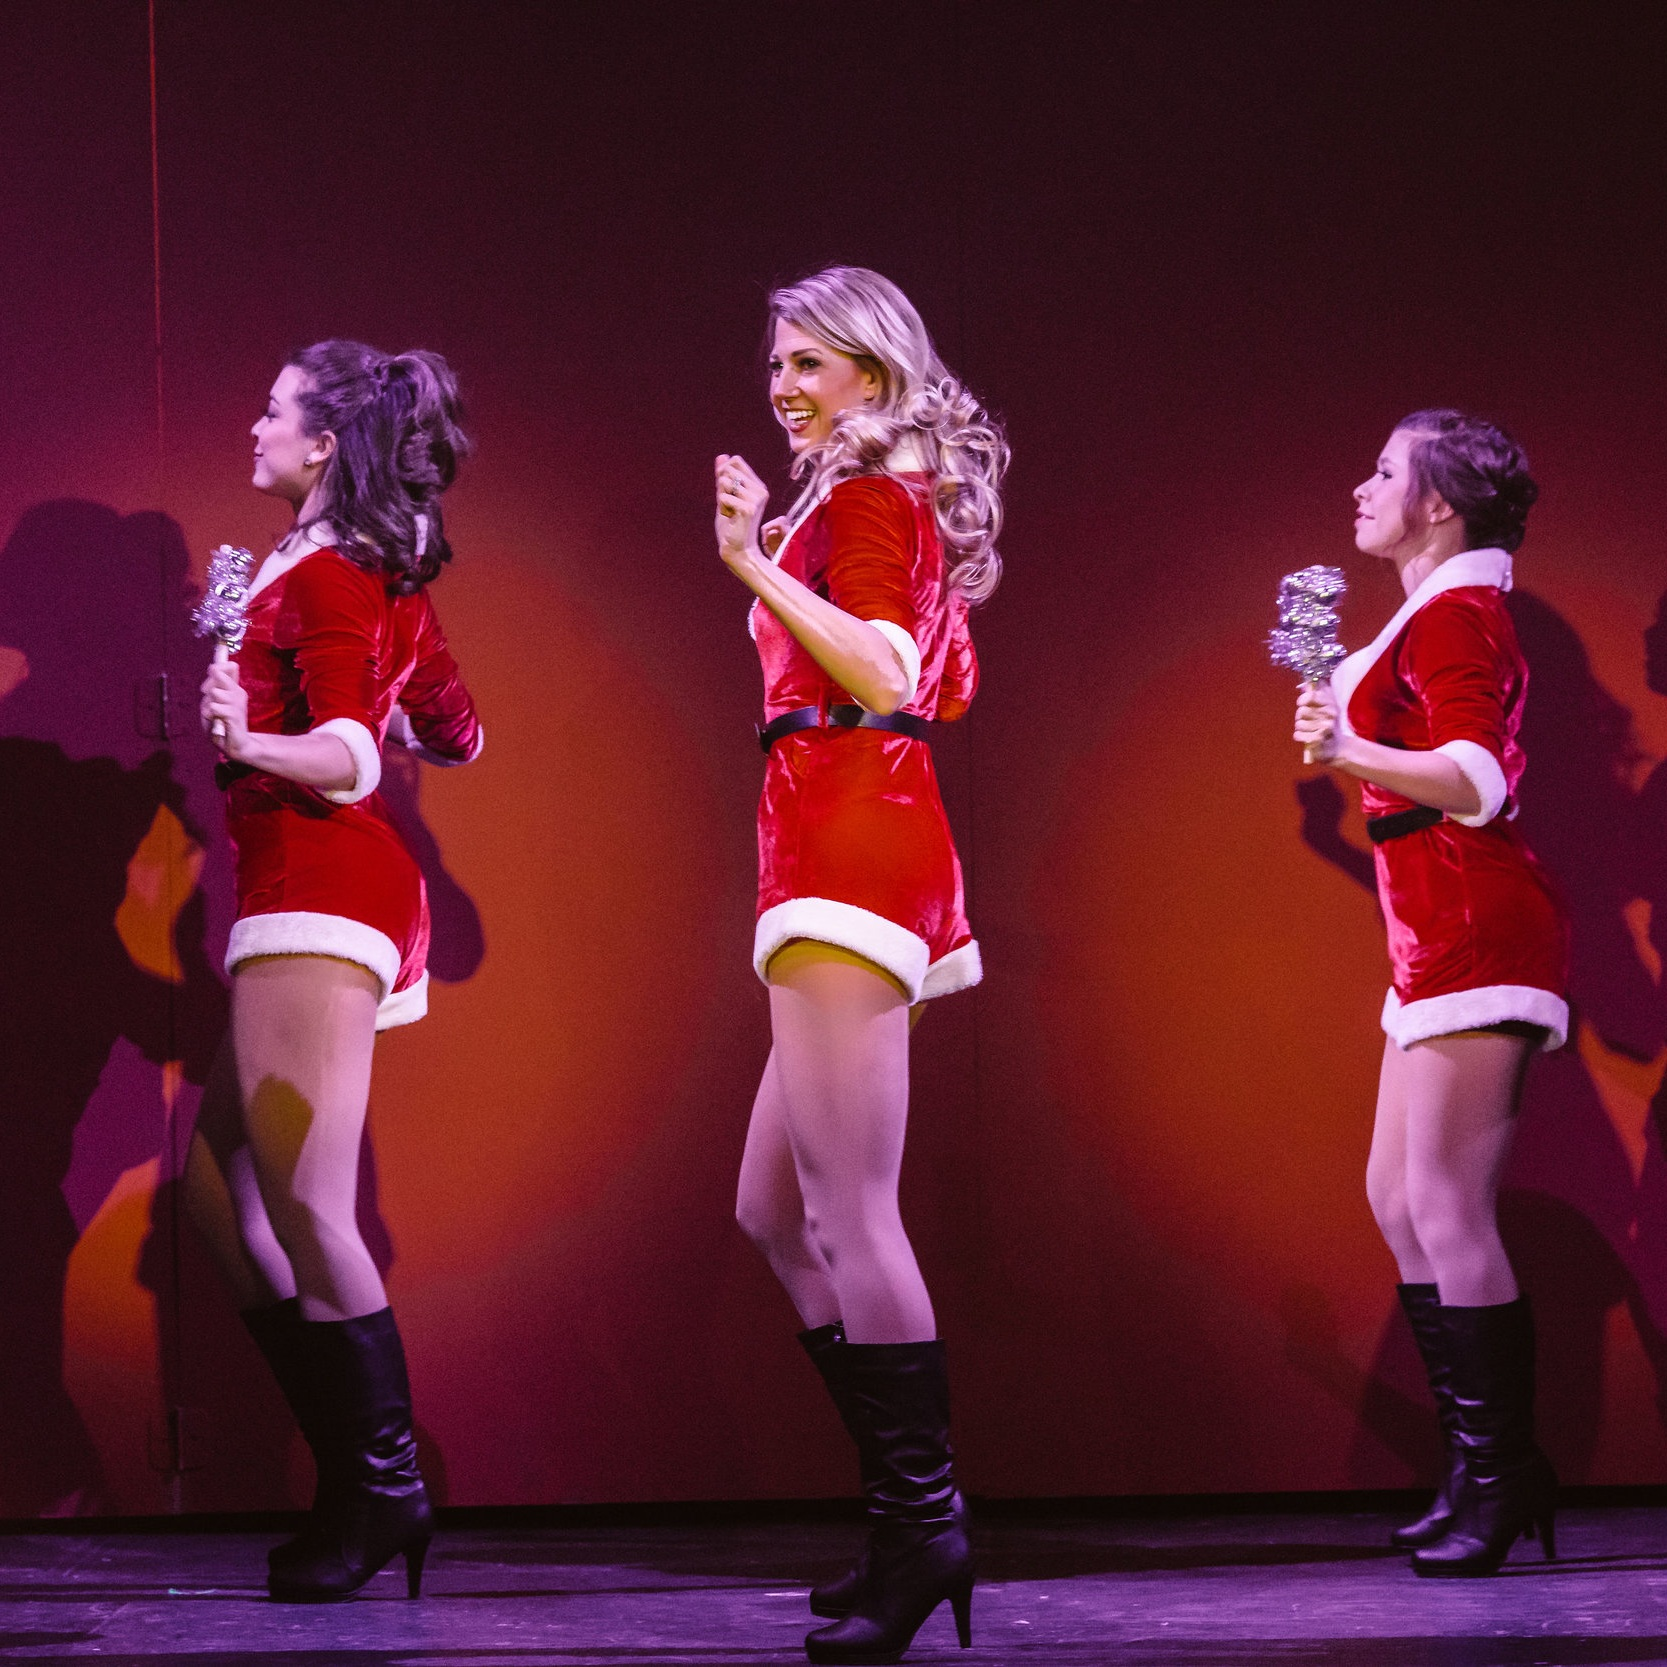 The Boots Were Made For Santa